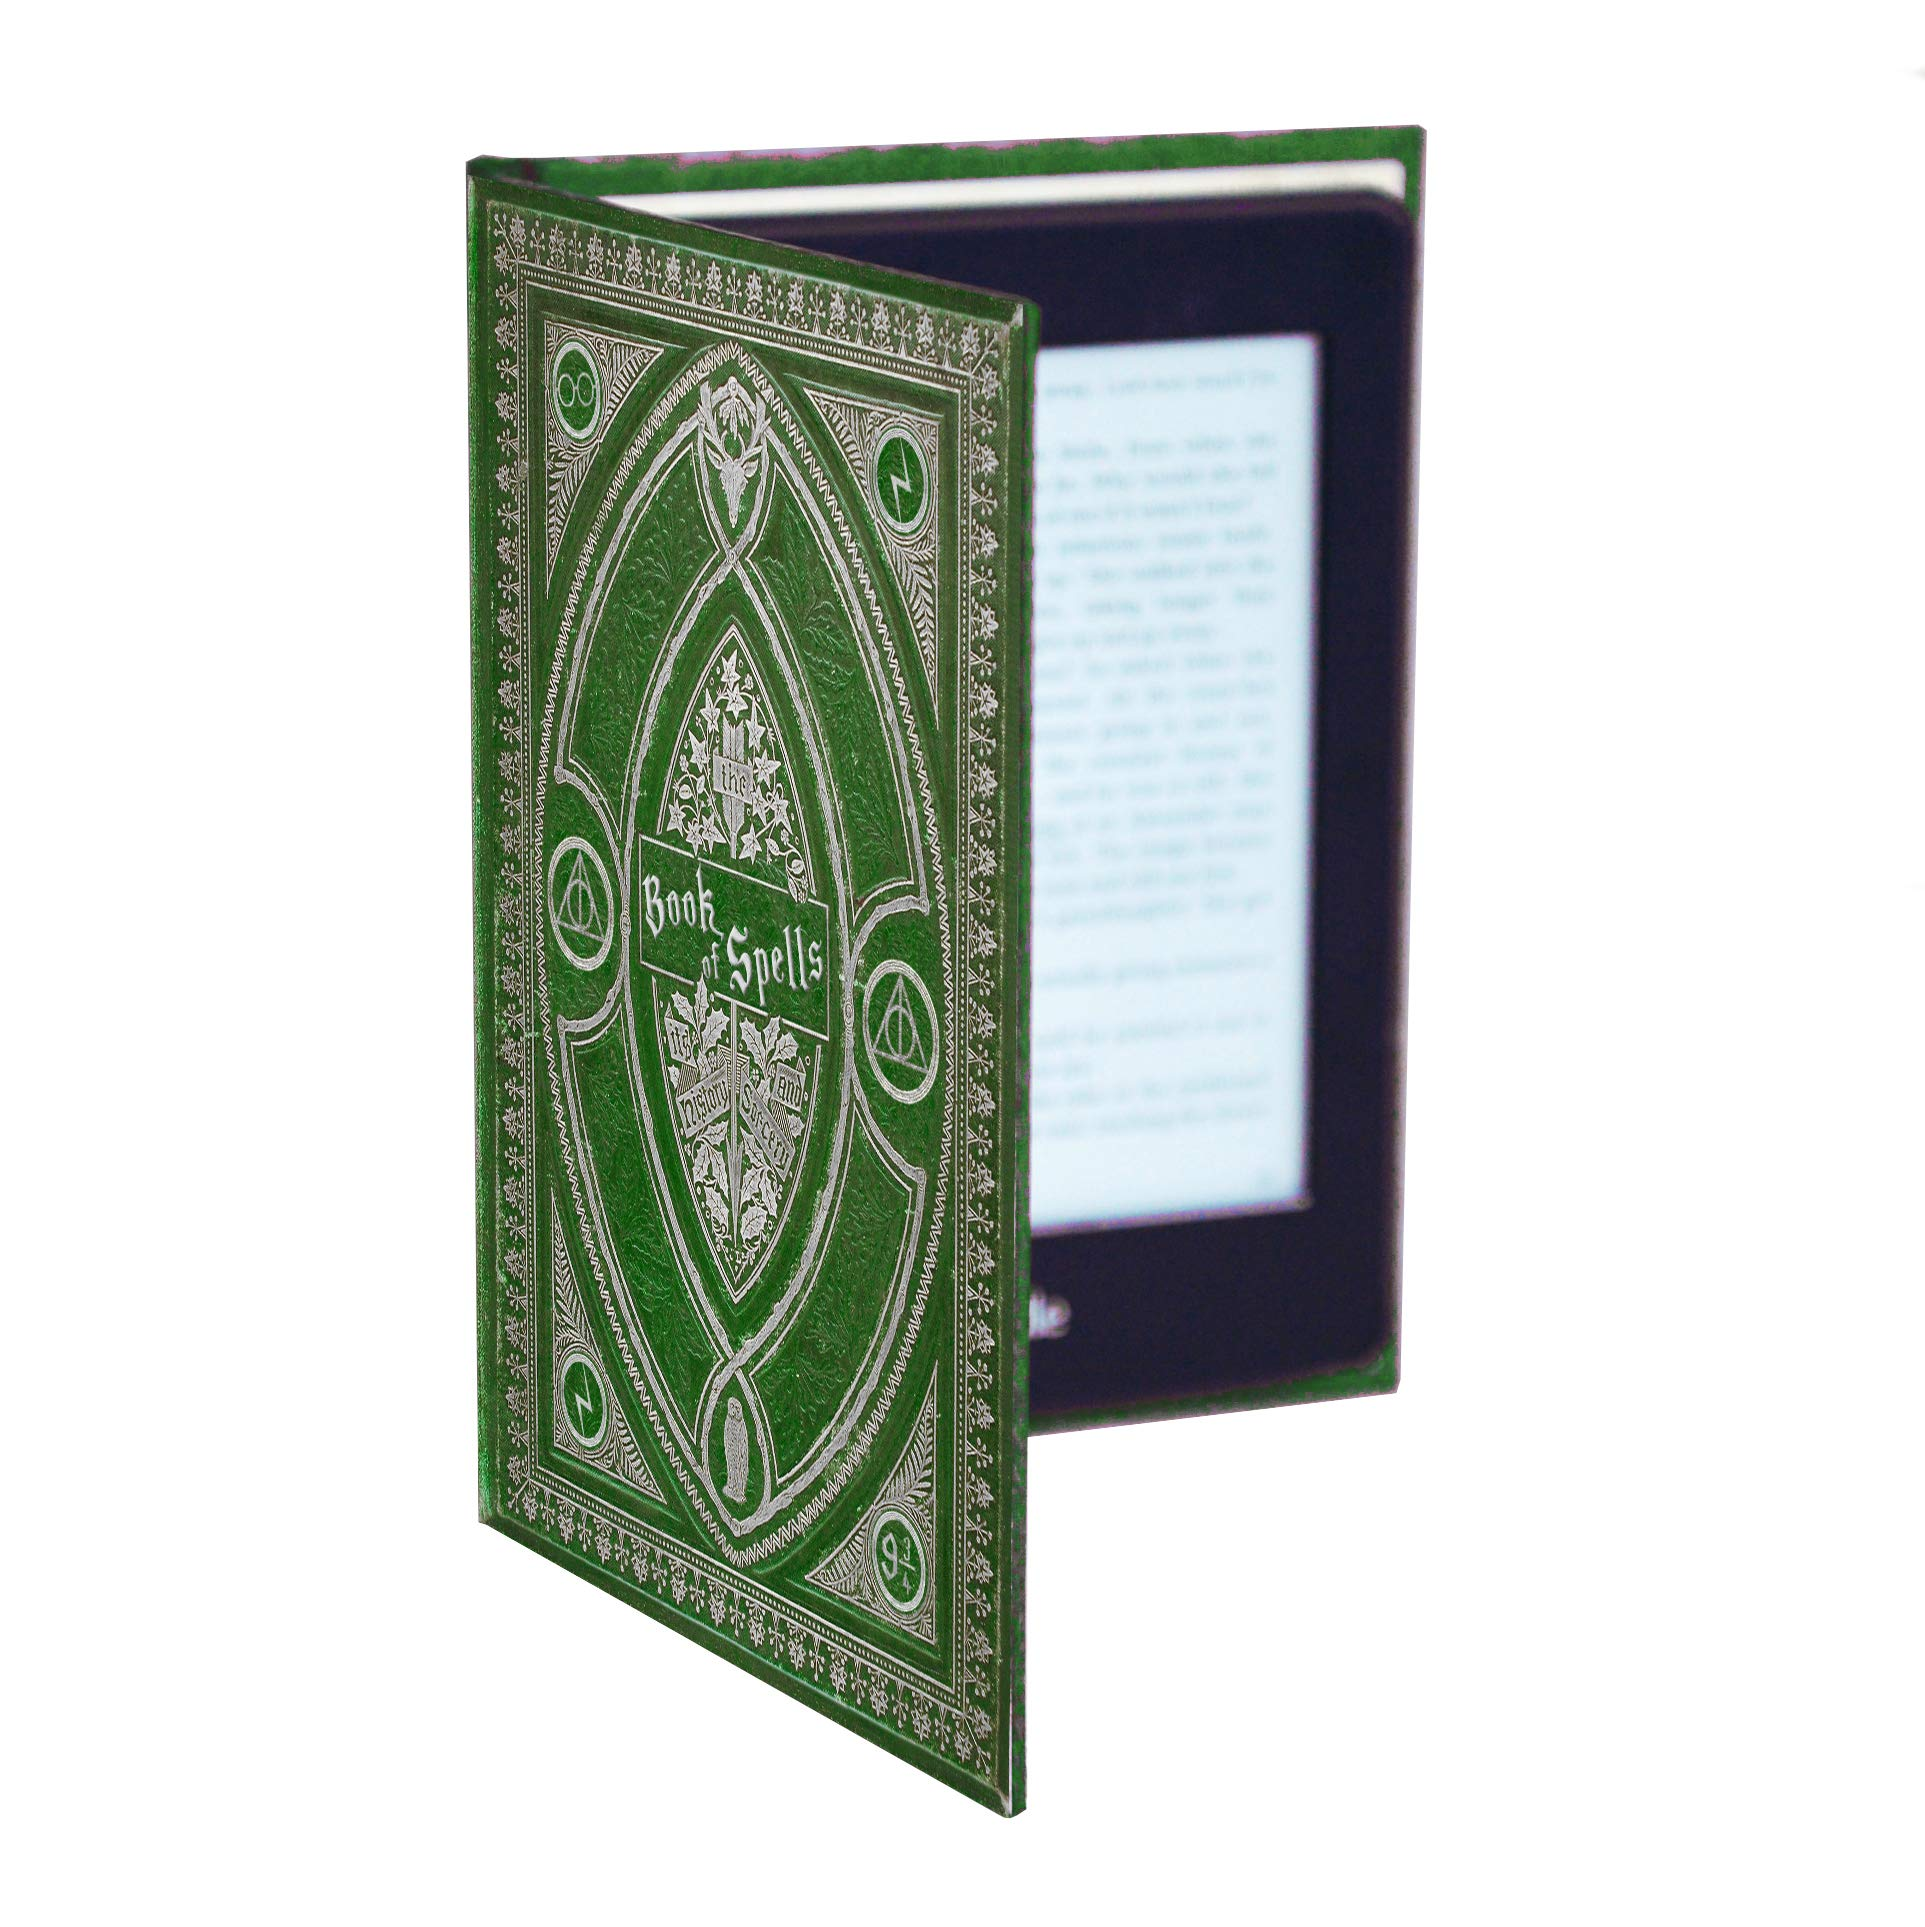 Kindle Paperwhite Case with Harry Potter Themed Foldback Book Cover (Slytherin Green)